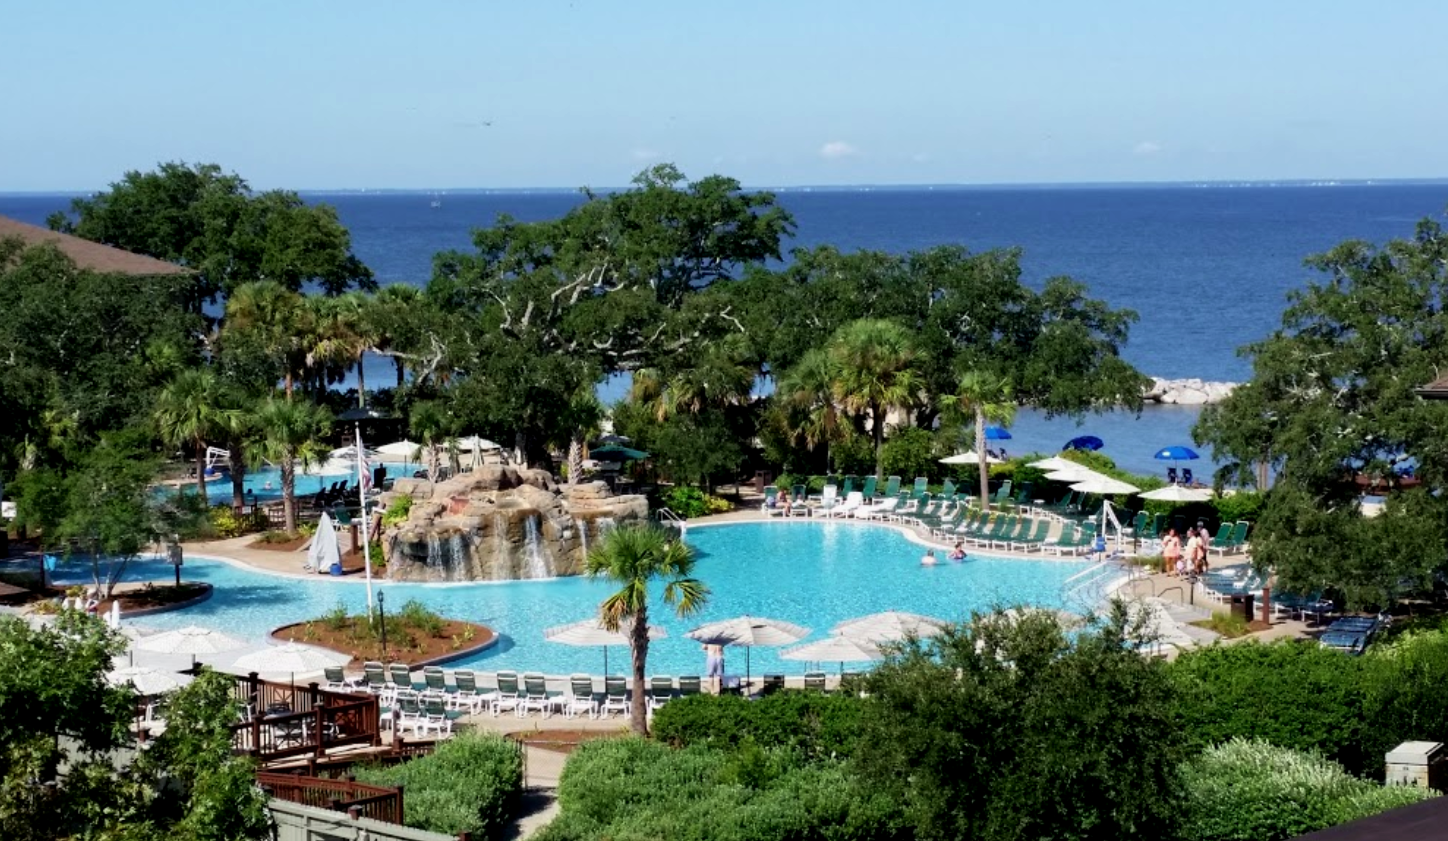 The Grand Hotel Point Clear Resort Spa In Alabama Is Paradise Alabama Vacation Orange Beach Alabama Vacation Vacations In The Us